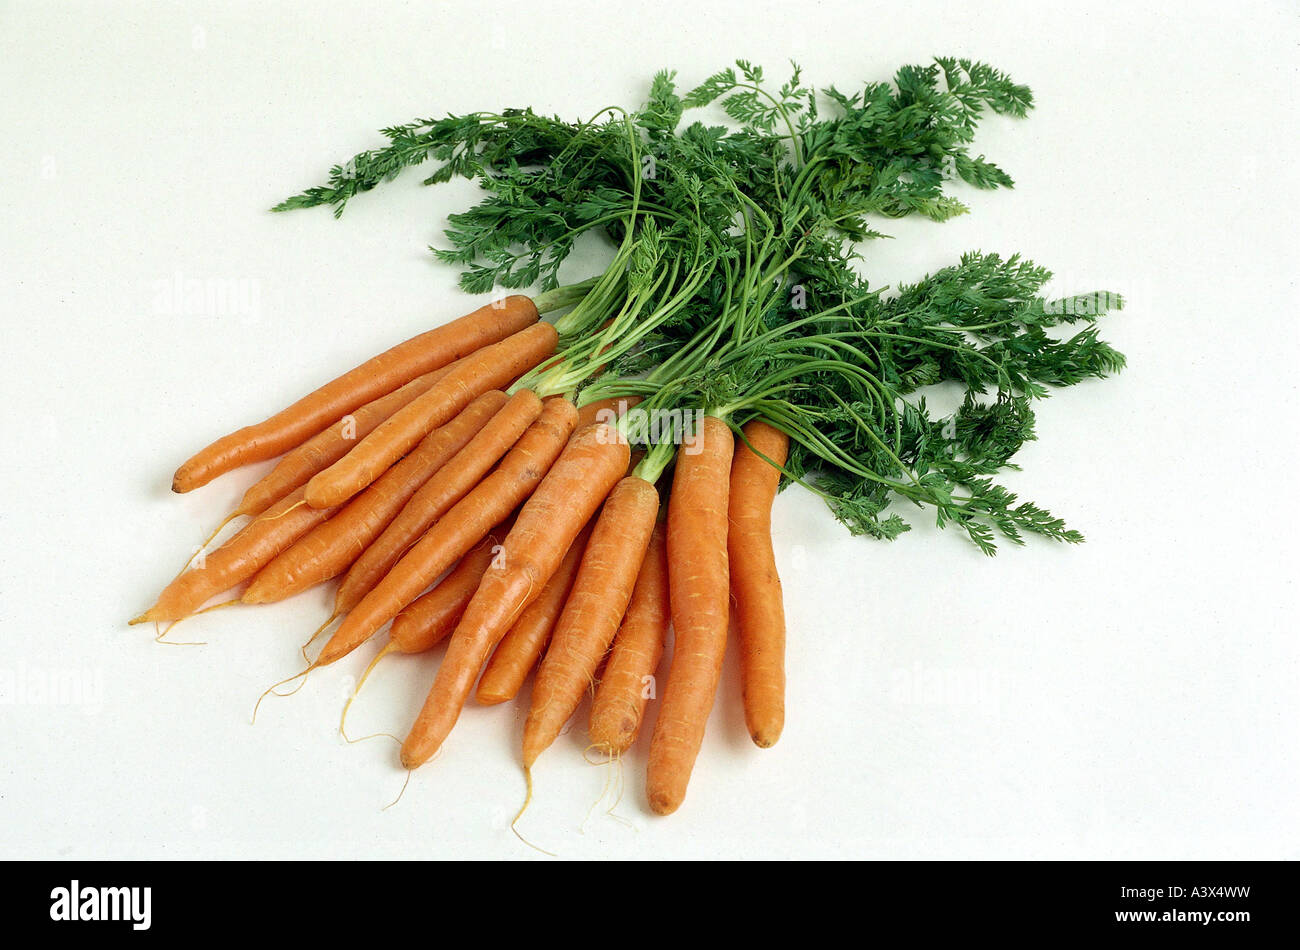 effectiveness of carrot juice daucus carota This study investigated the effects of five fractions from carrot juice extract (cje) on human lymphoid leukaemia cell lines, together with five purified bioactive compounds found in daucus carota.